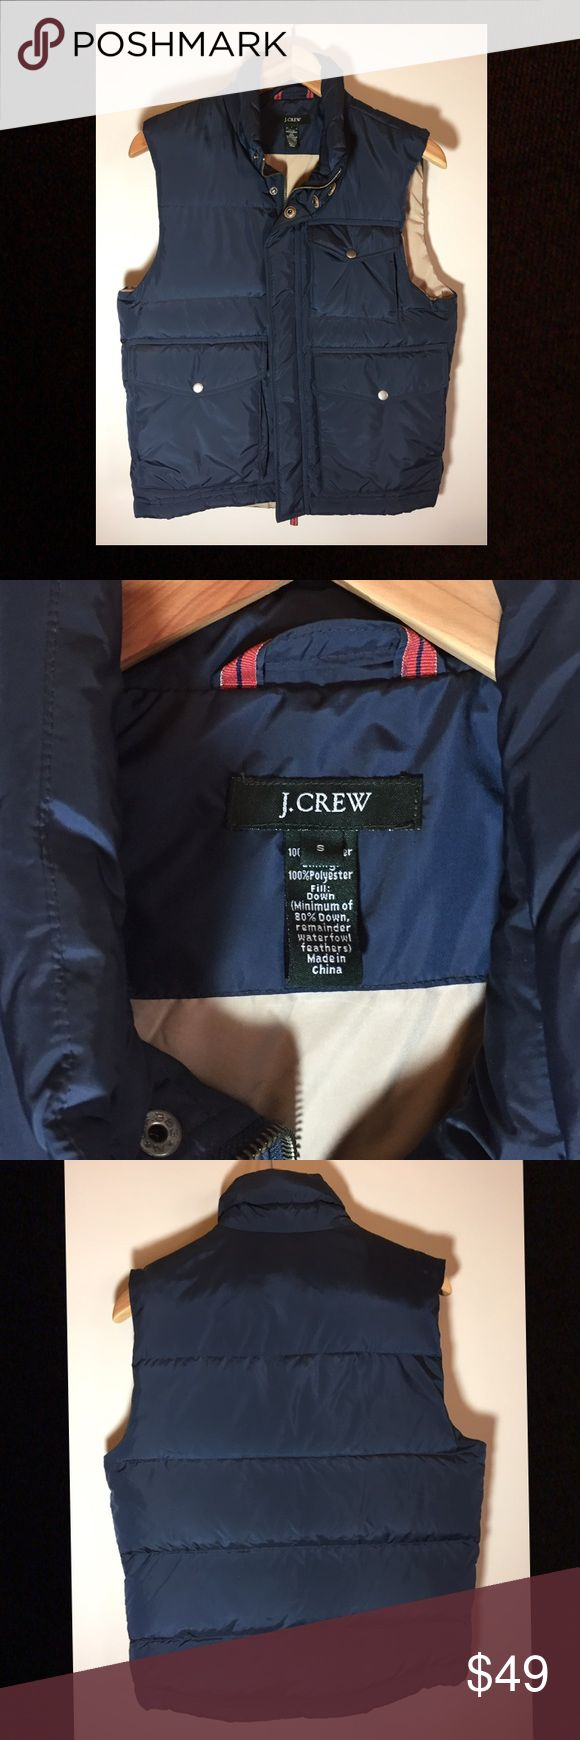 J Crew Blue Down-filled Puffer Vest Very comfortable and soft J Crew Puffer Vest.  Worn twice at most. J. Crew Jackets & Coats Vests